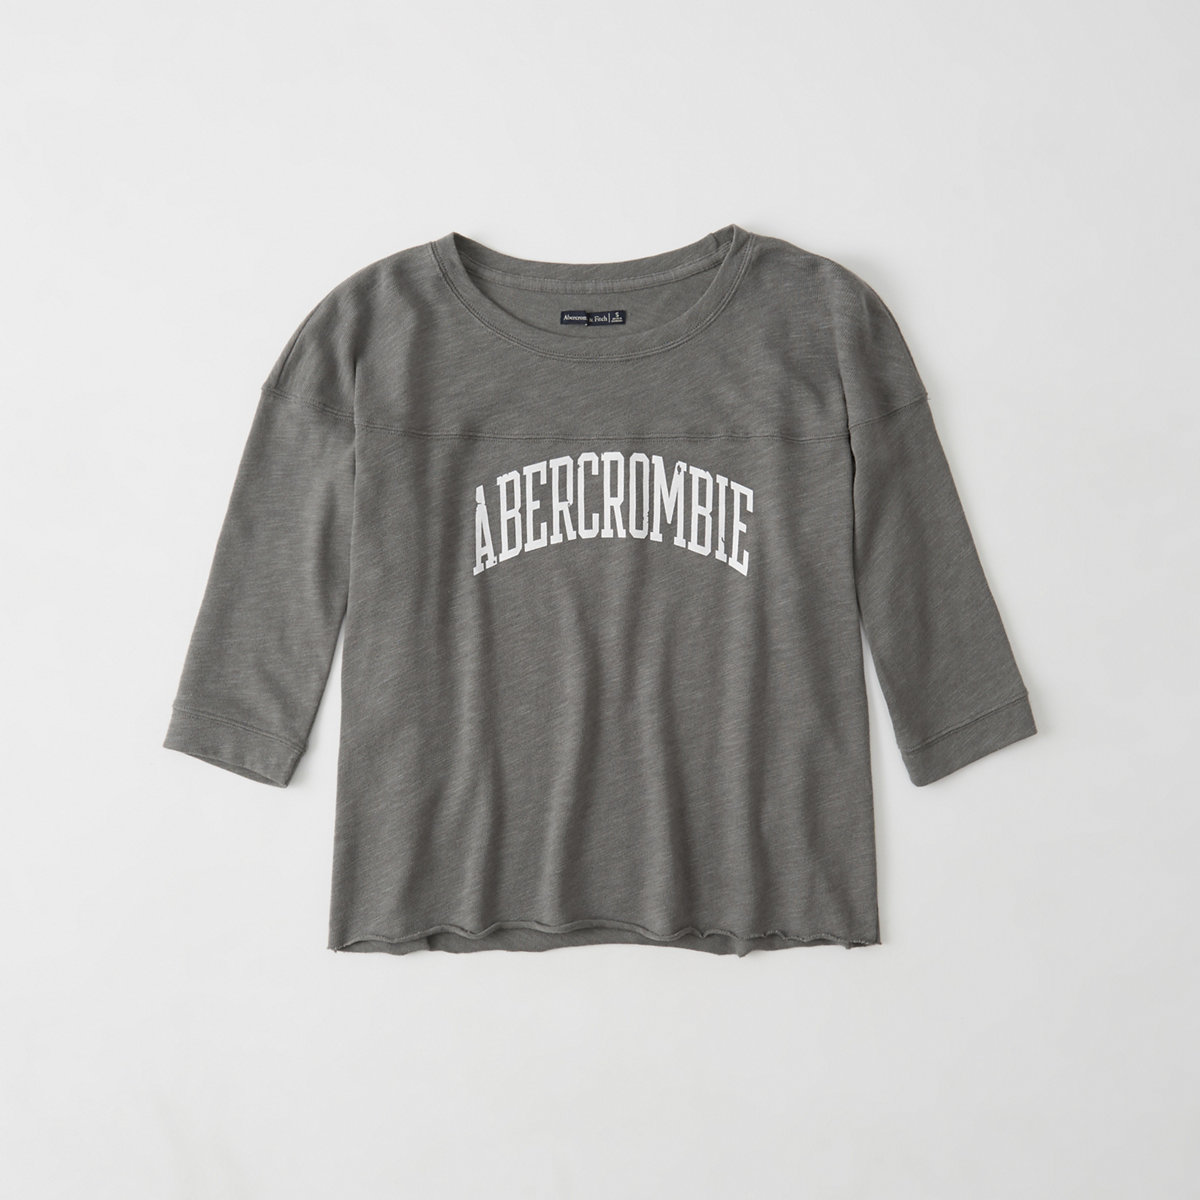 Abercrombie long-sleeved graphic football tee